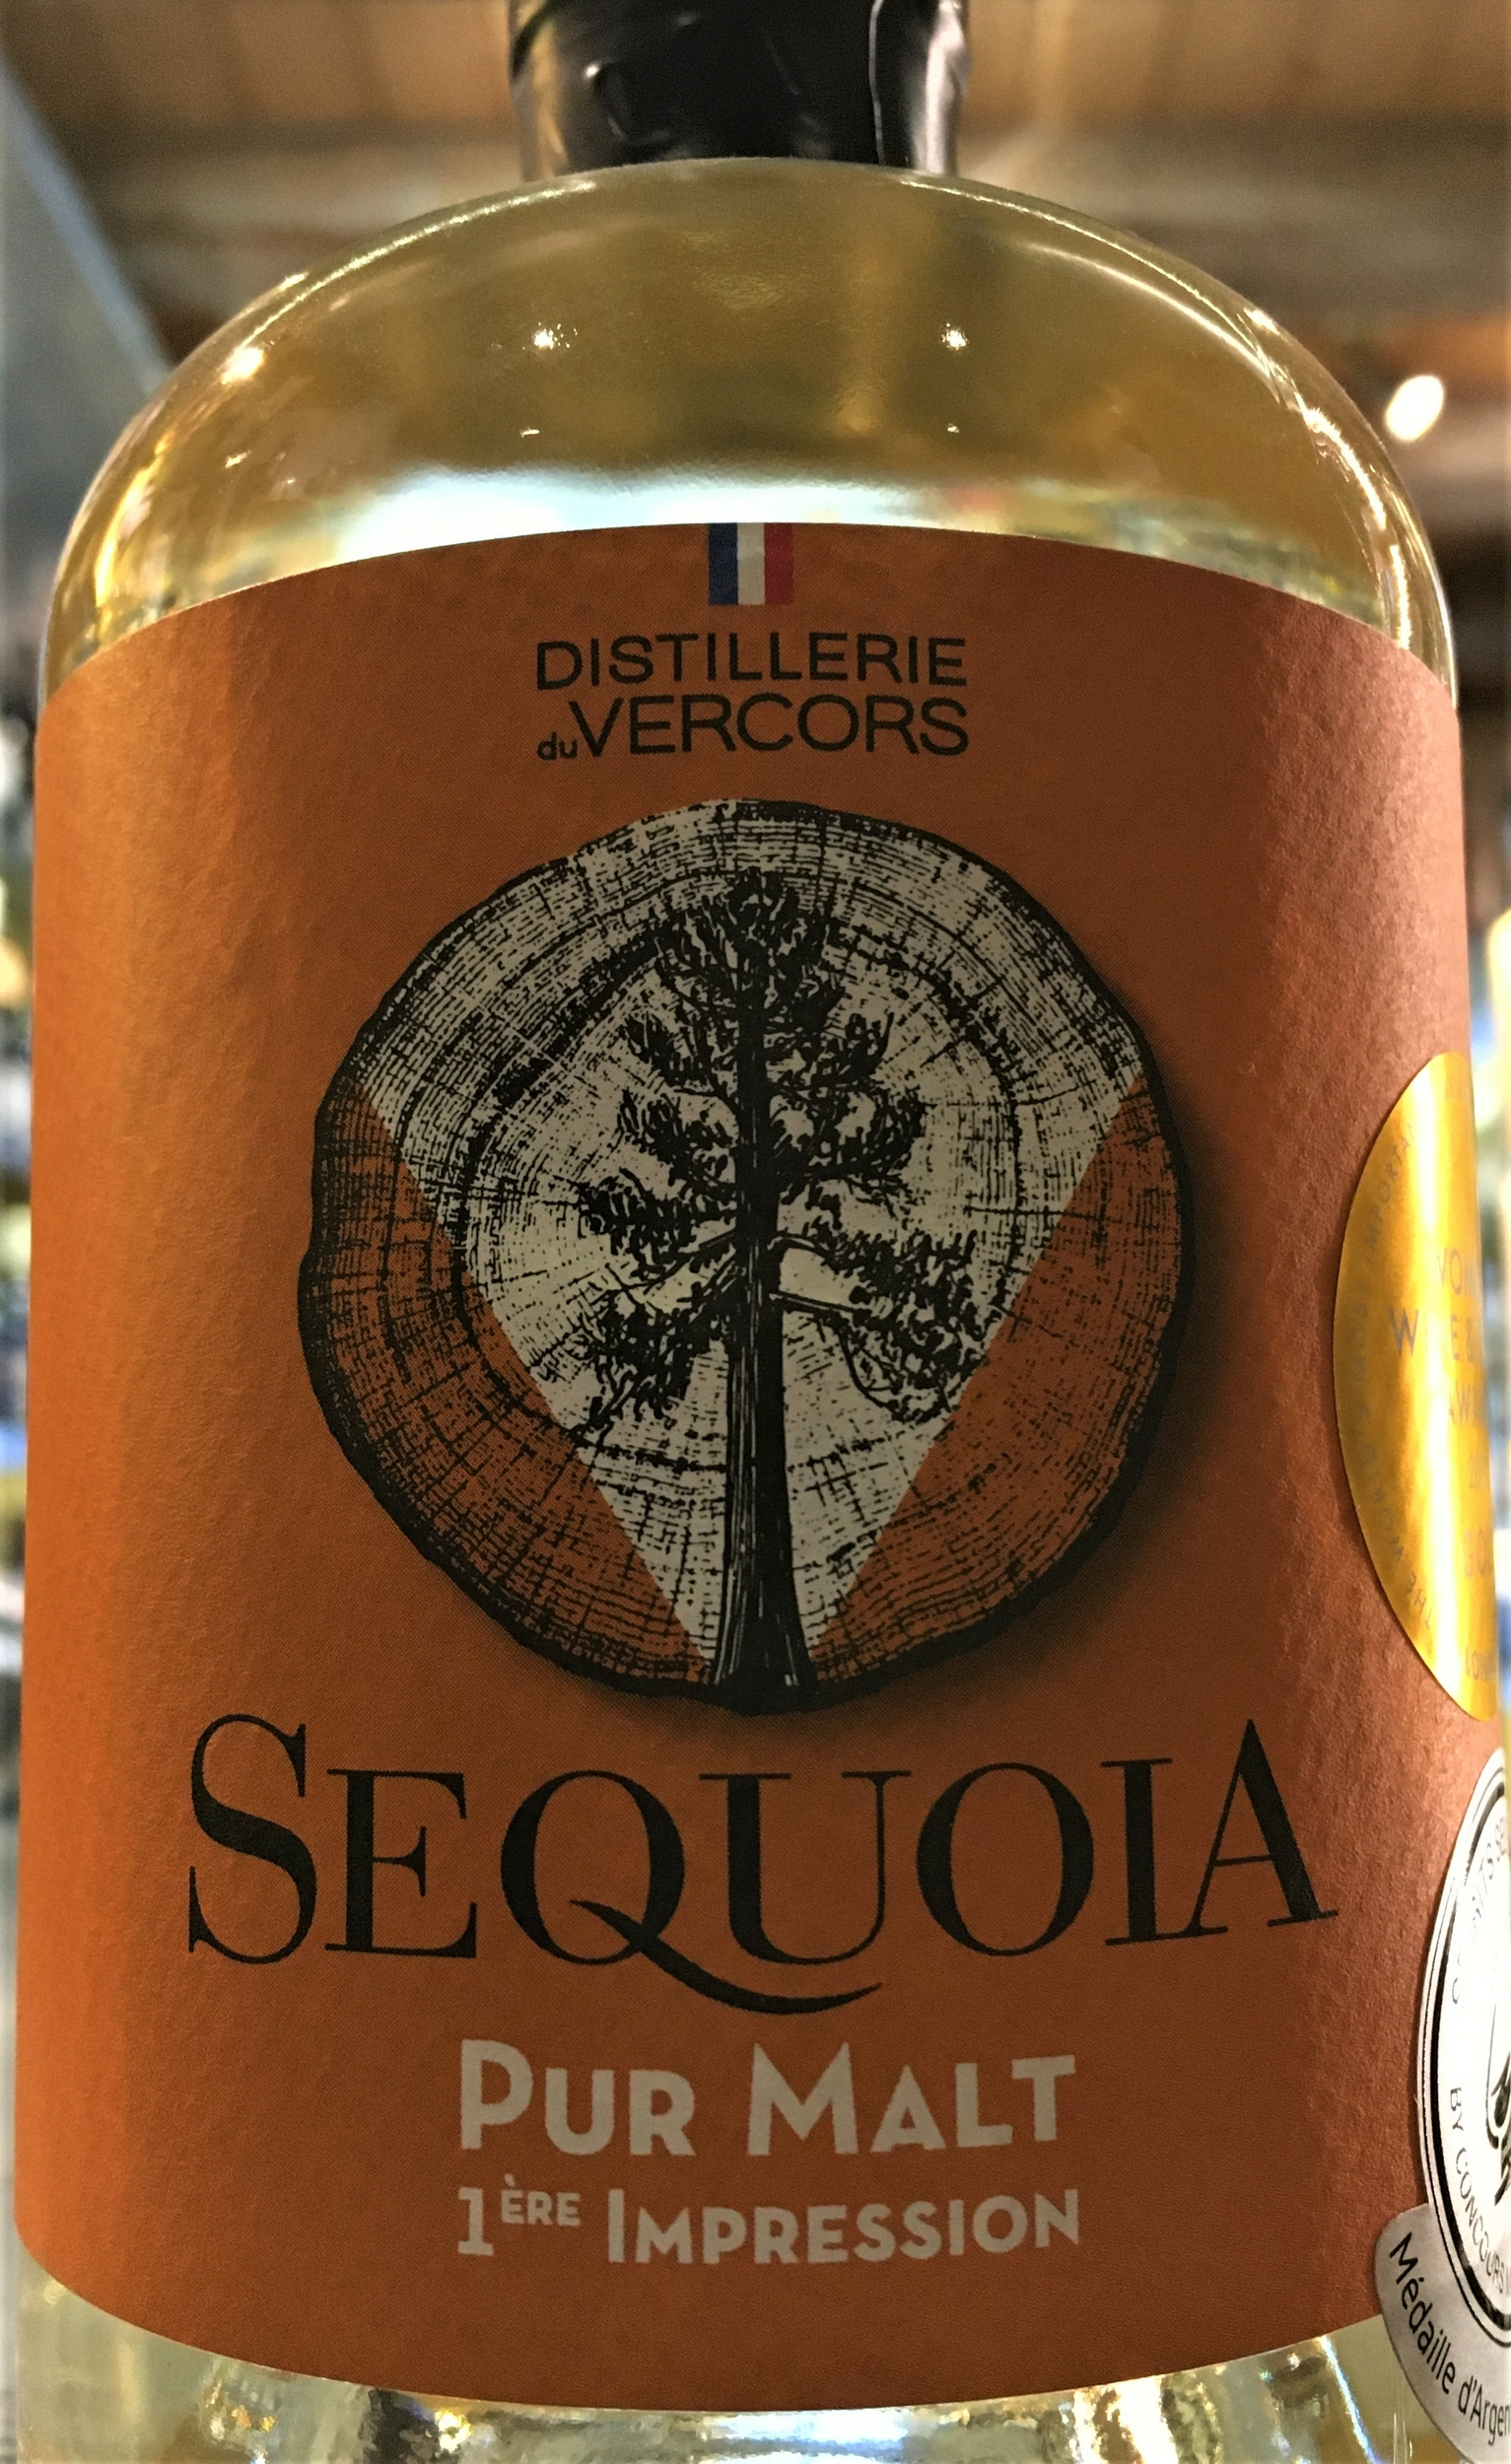 Sequoia Pur Malt 1ère Impression